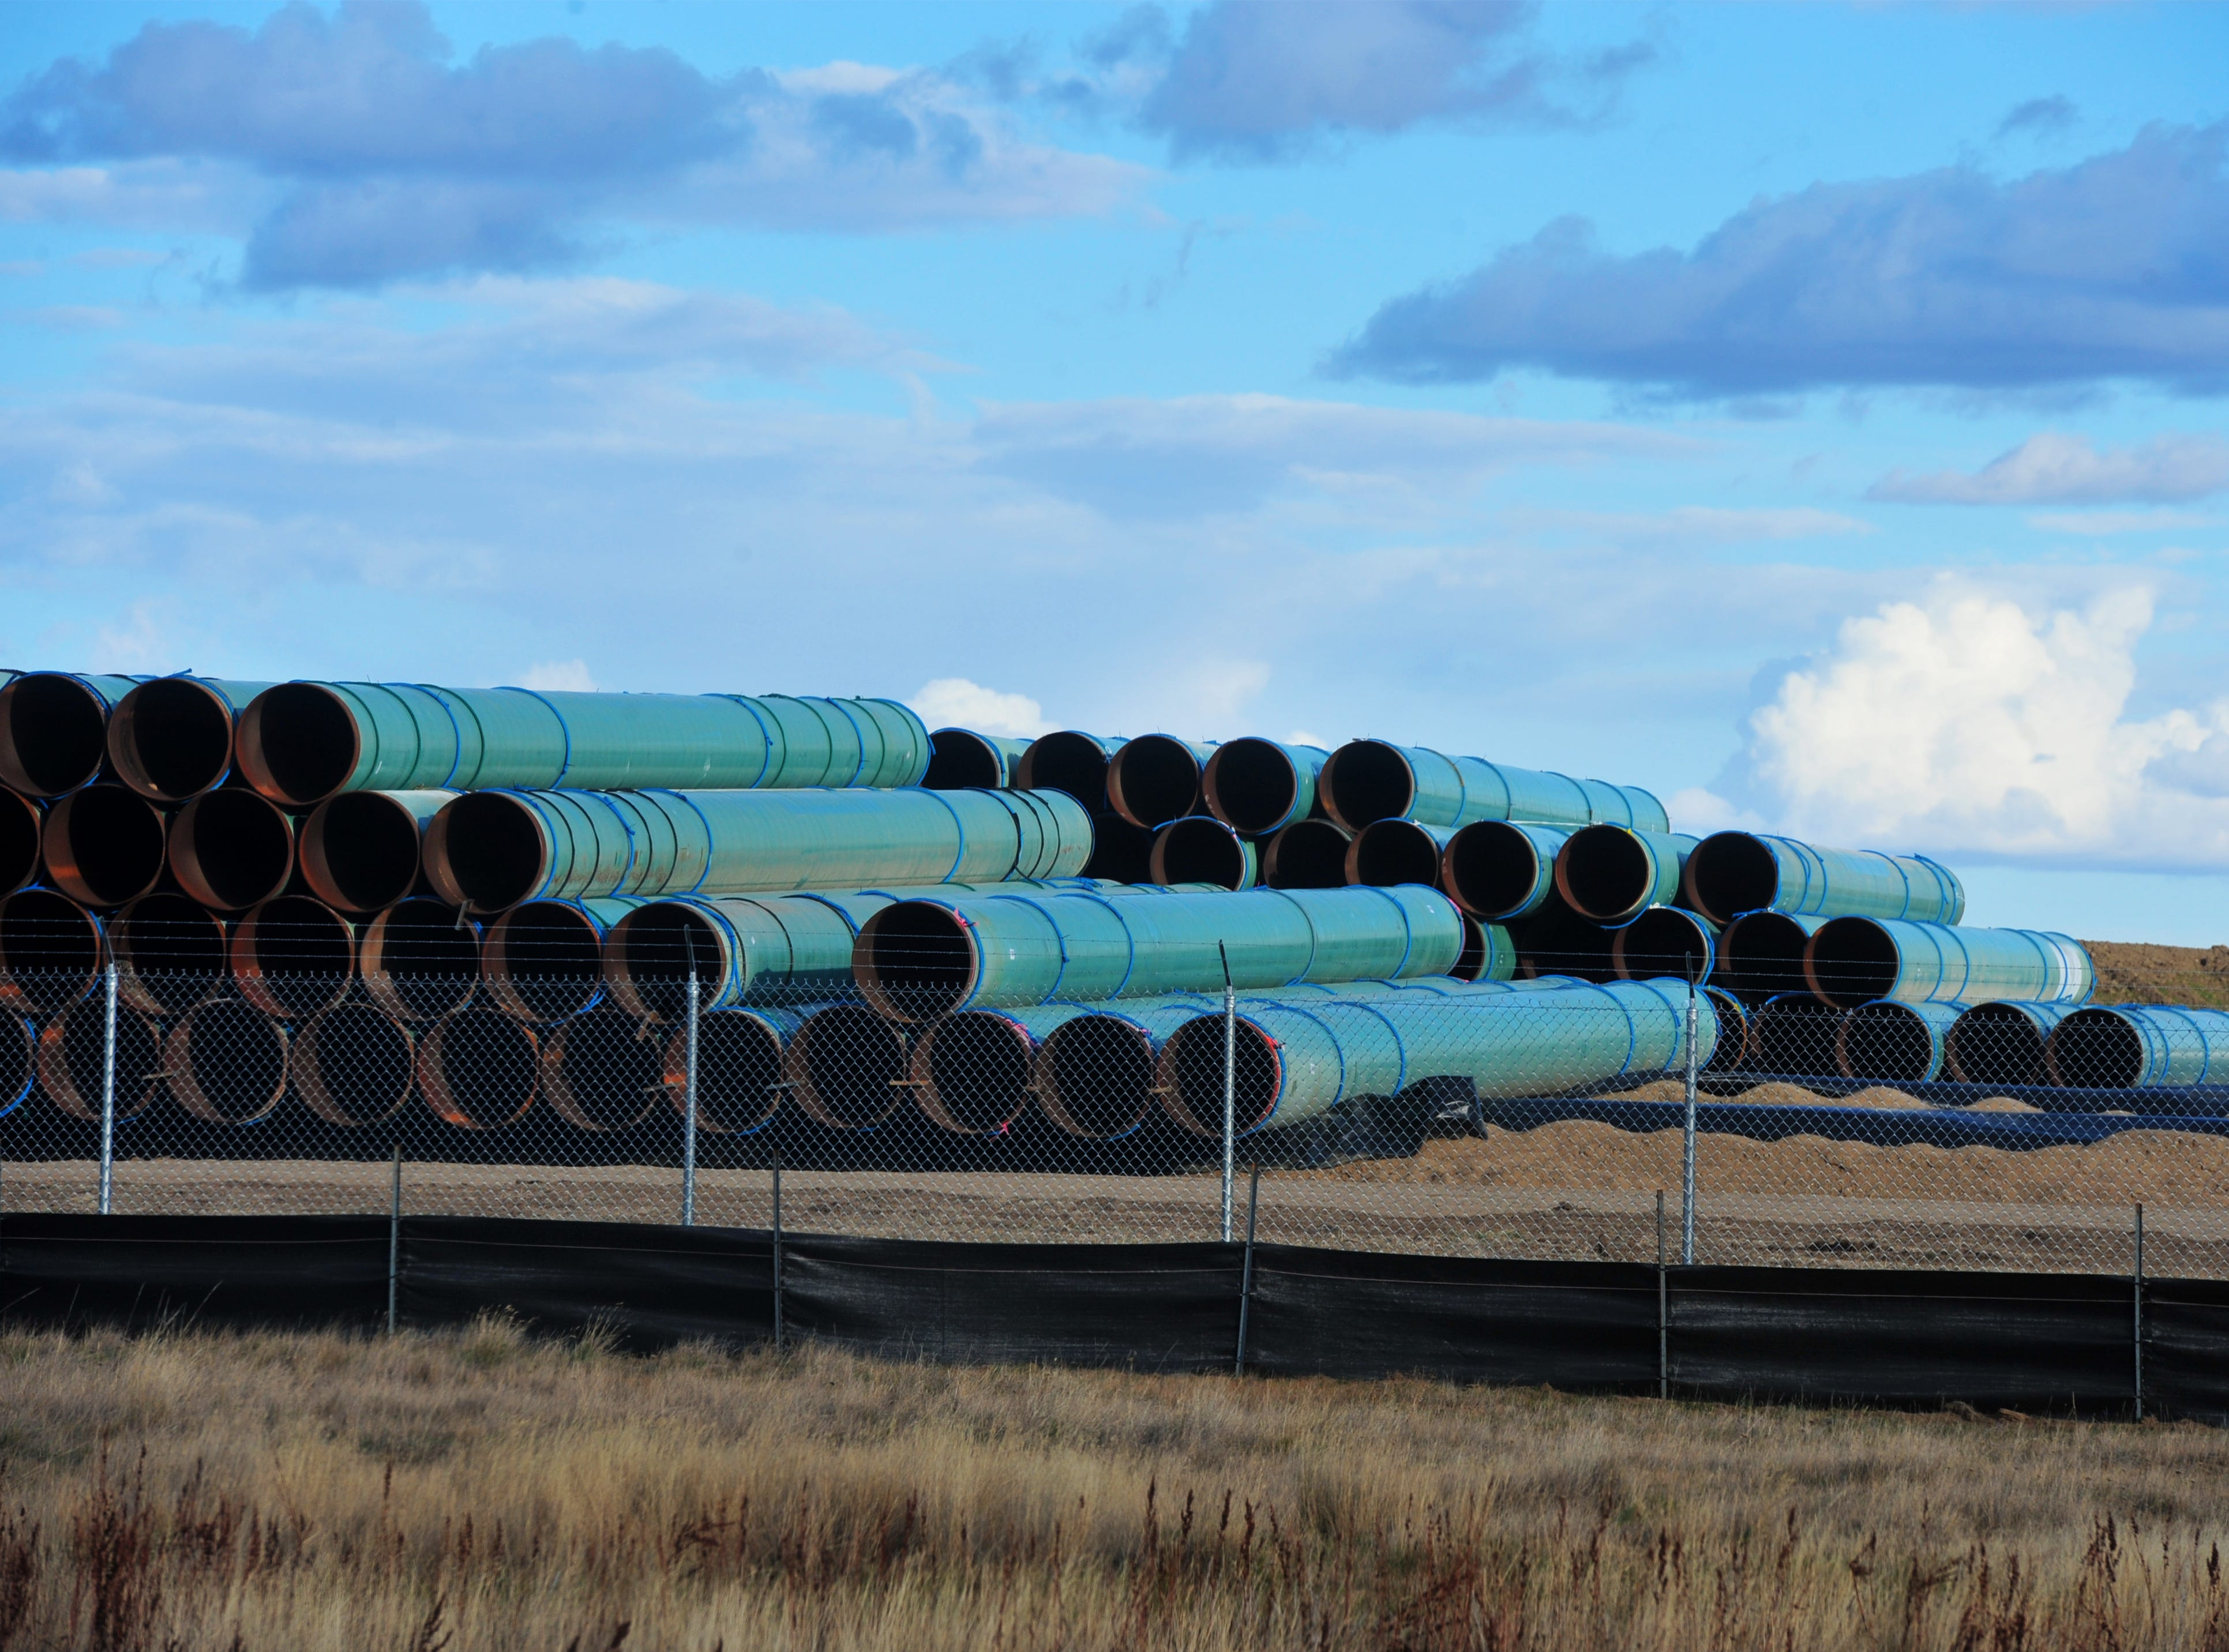 Pipe for the Keystone XL Pipeline is being stored at a pipe yard in Northern Phillips County in anticipation of the beginning of construction in 2019.